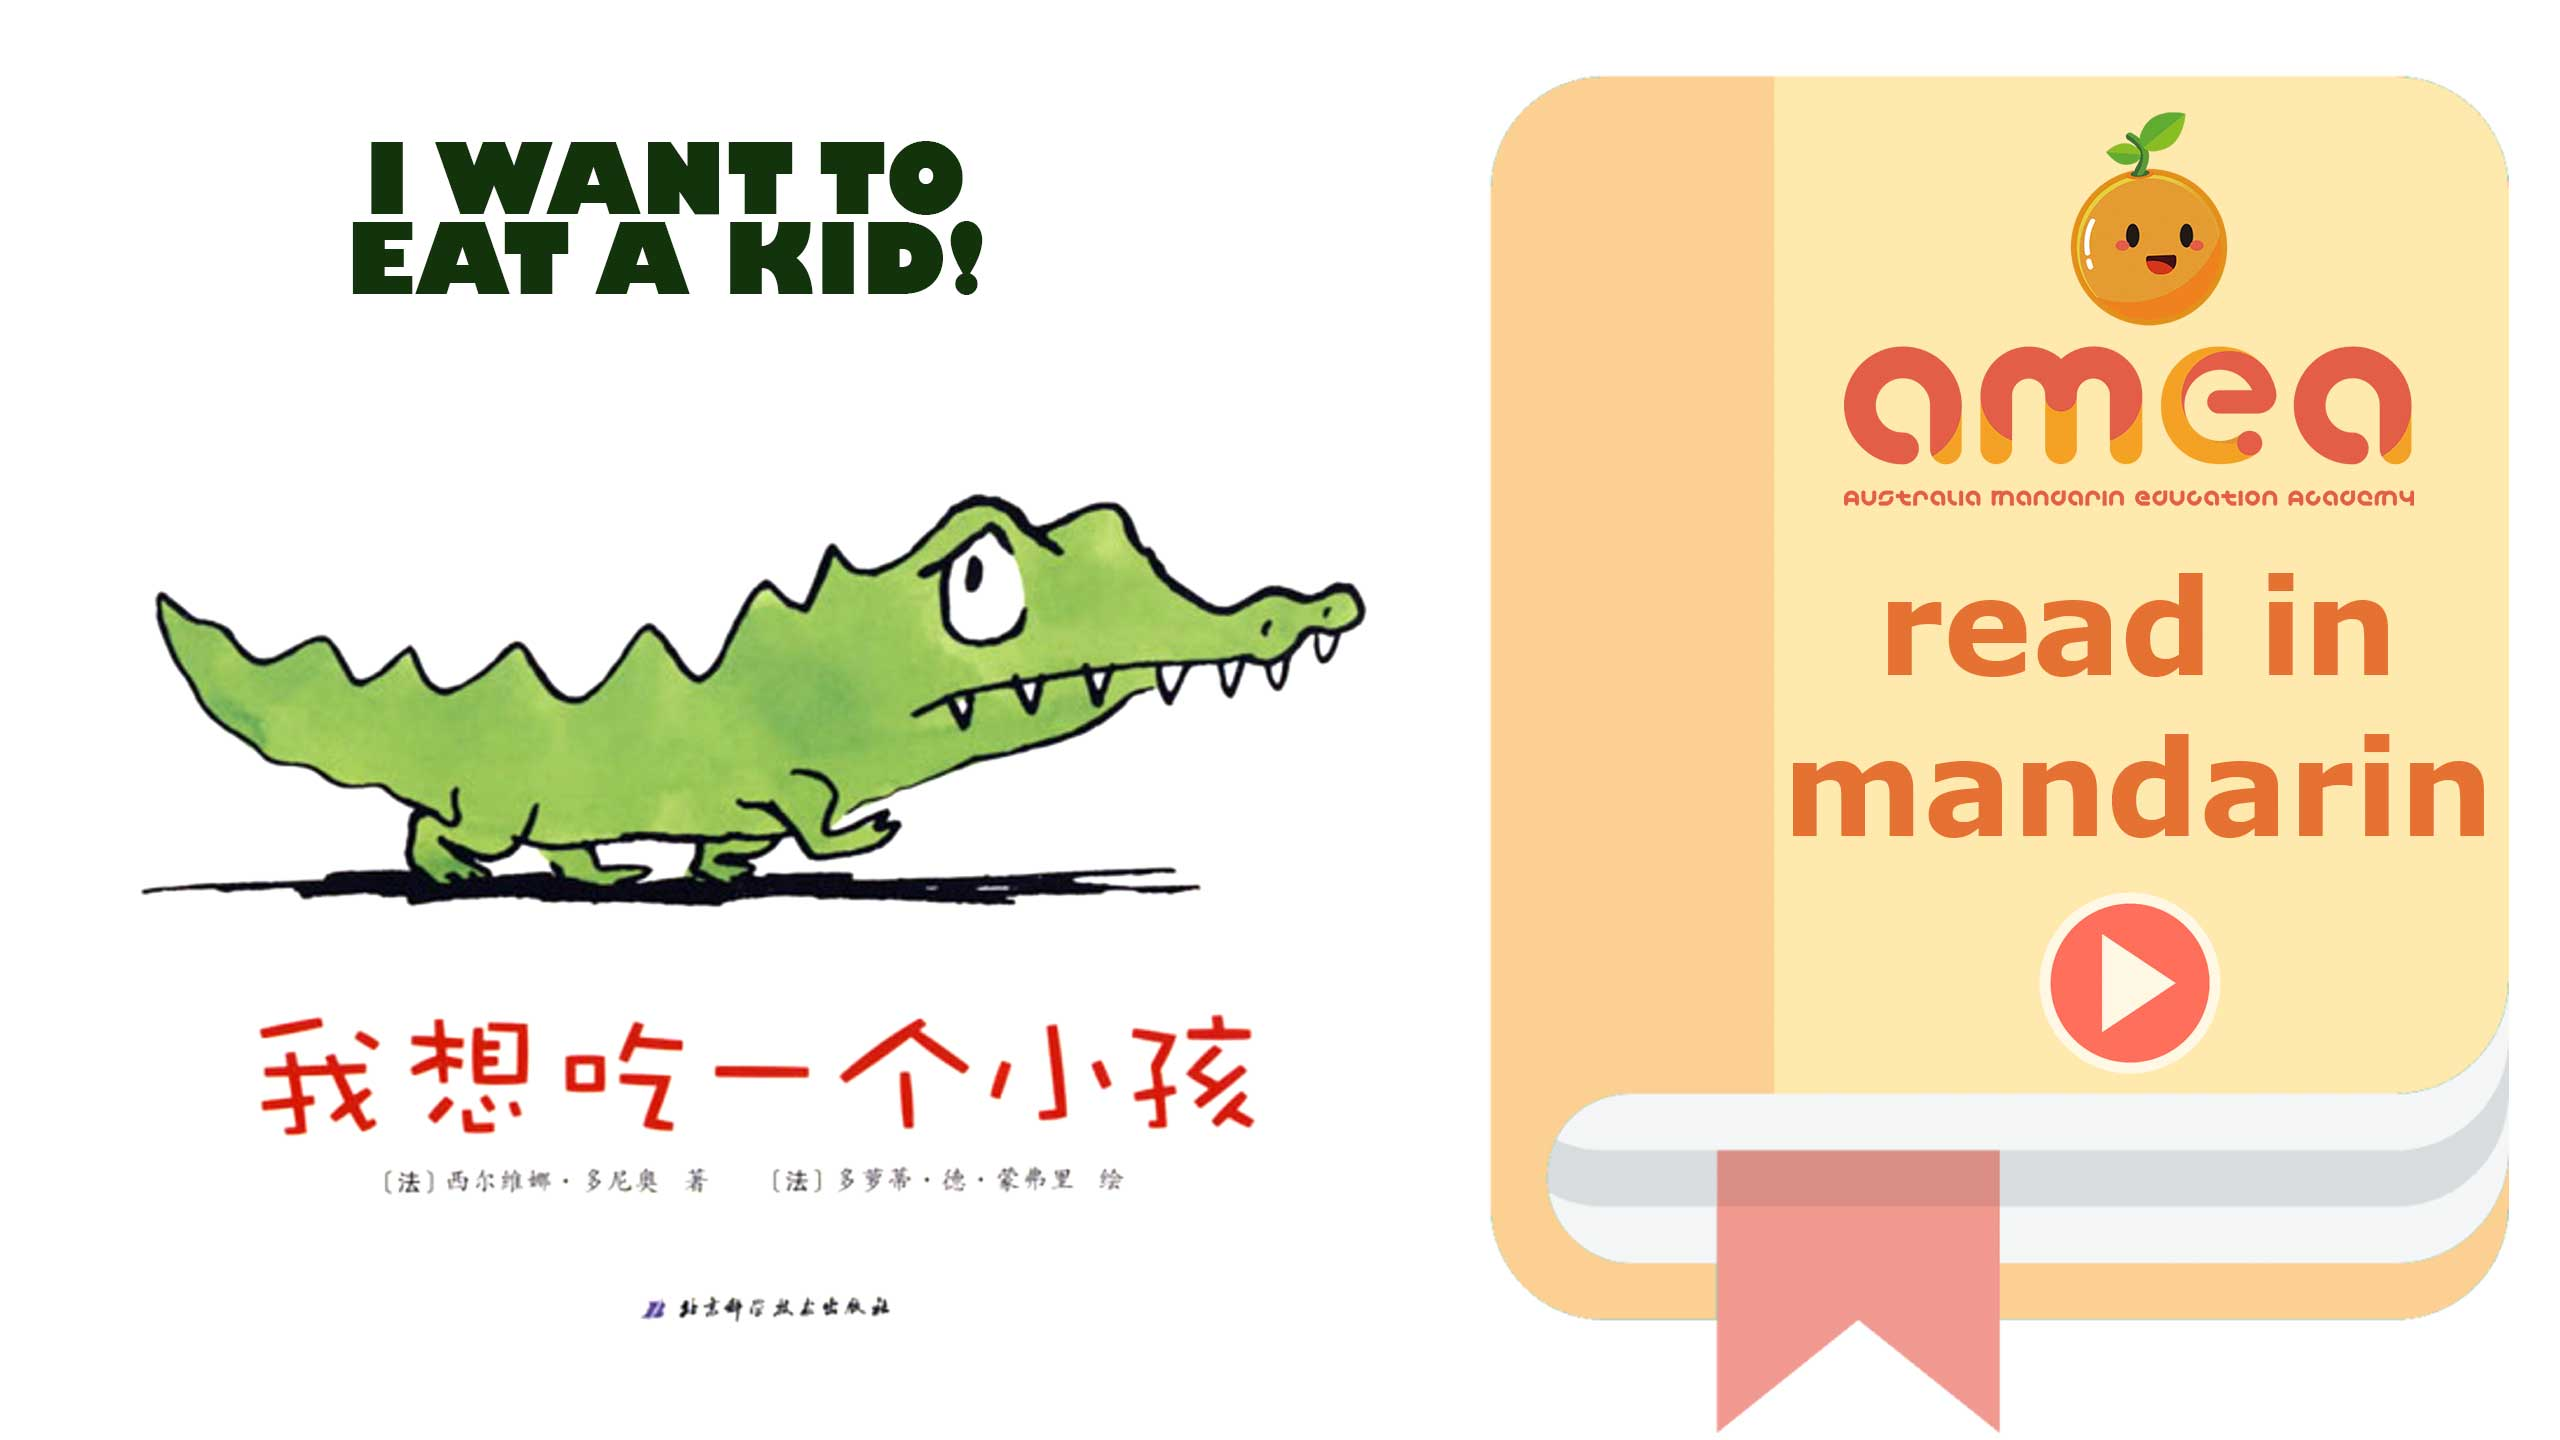 I Want To Eat A Kid - Read in Mandarin